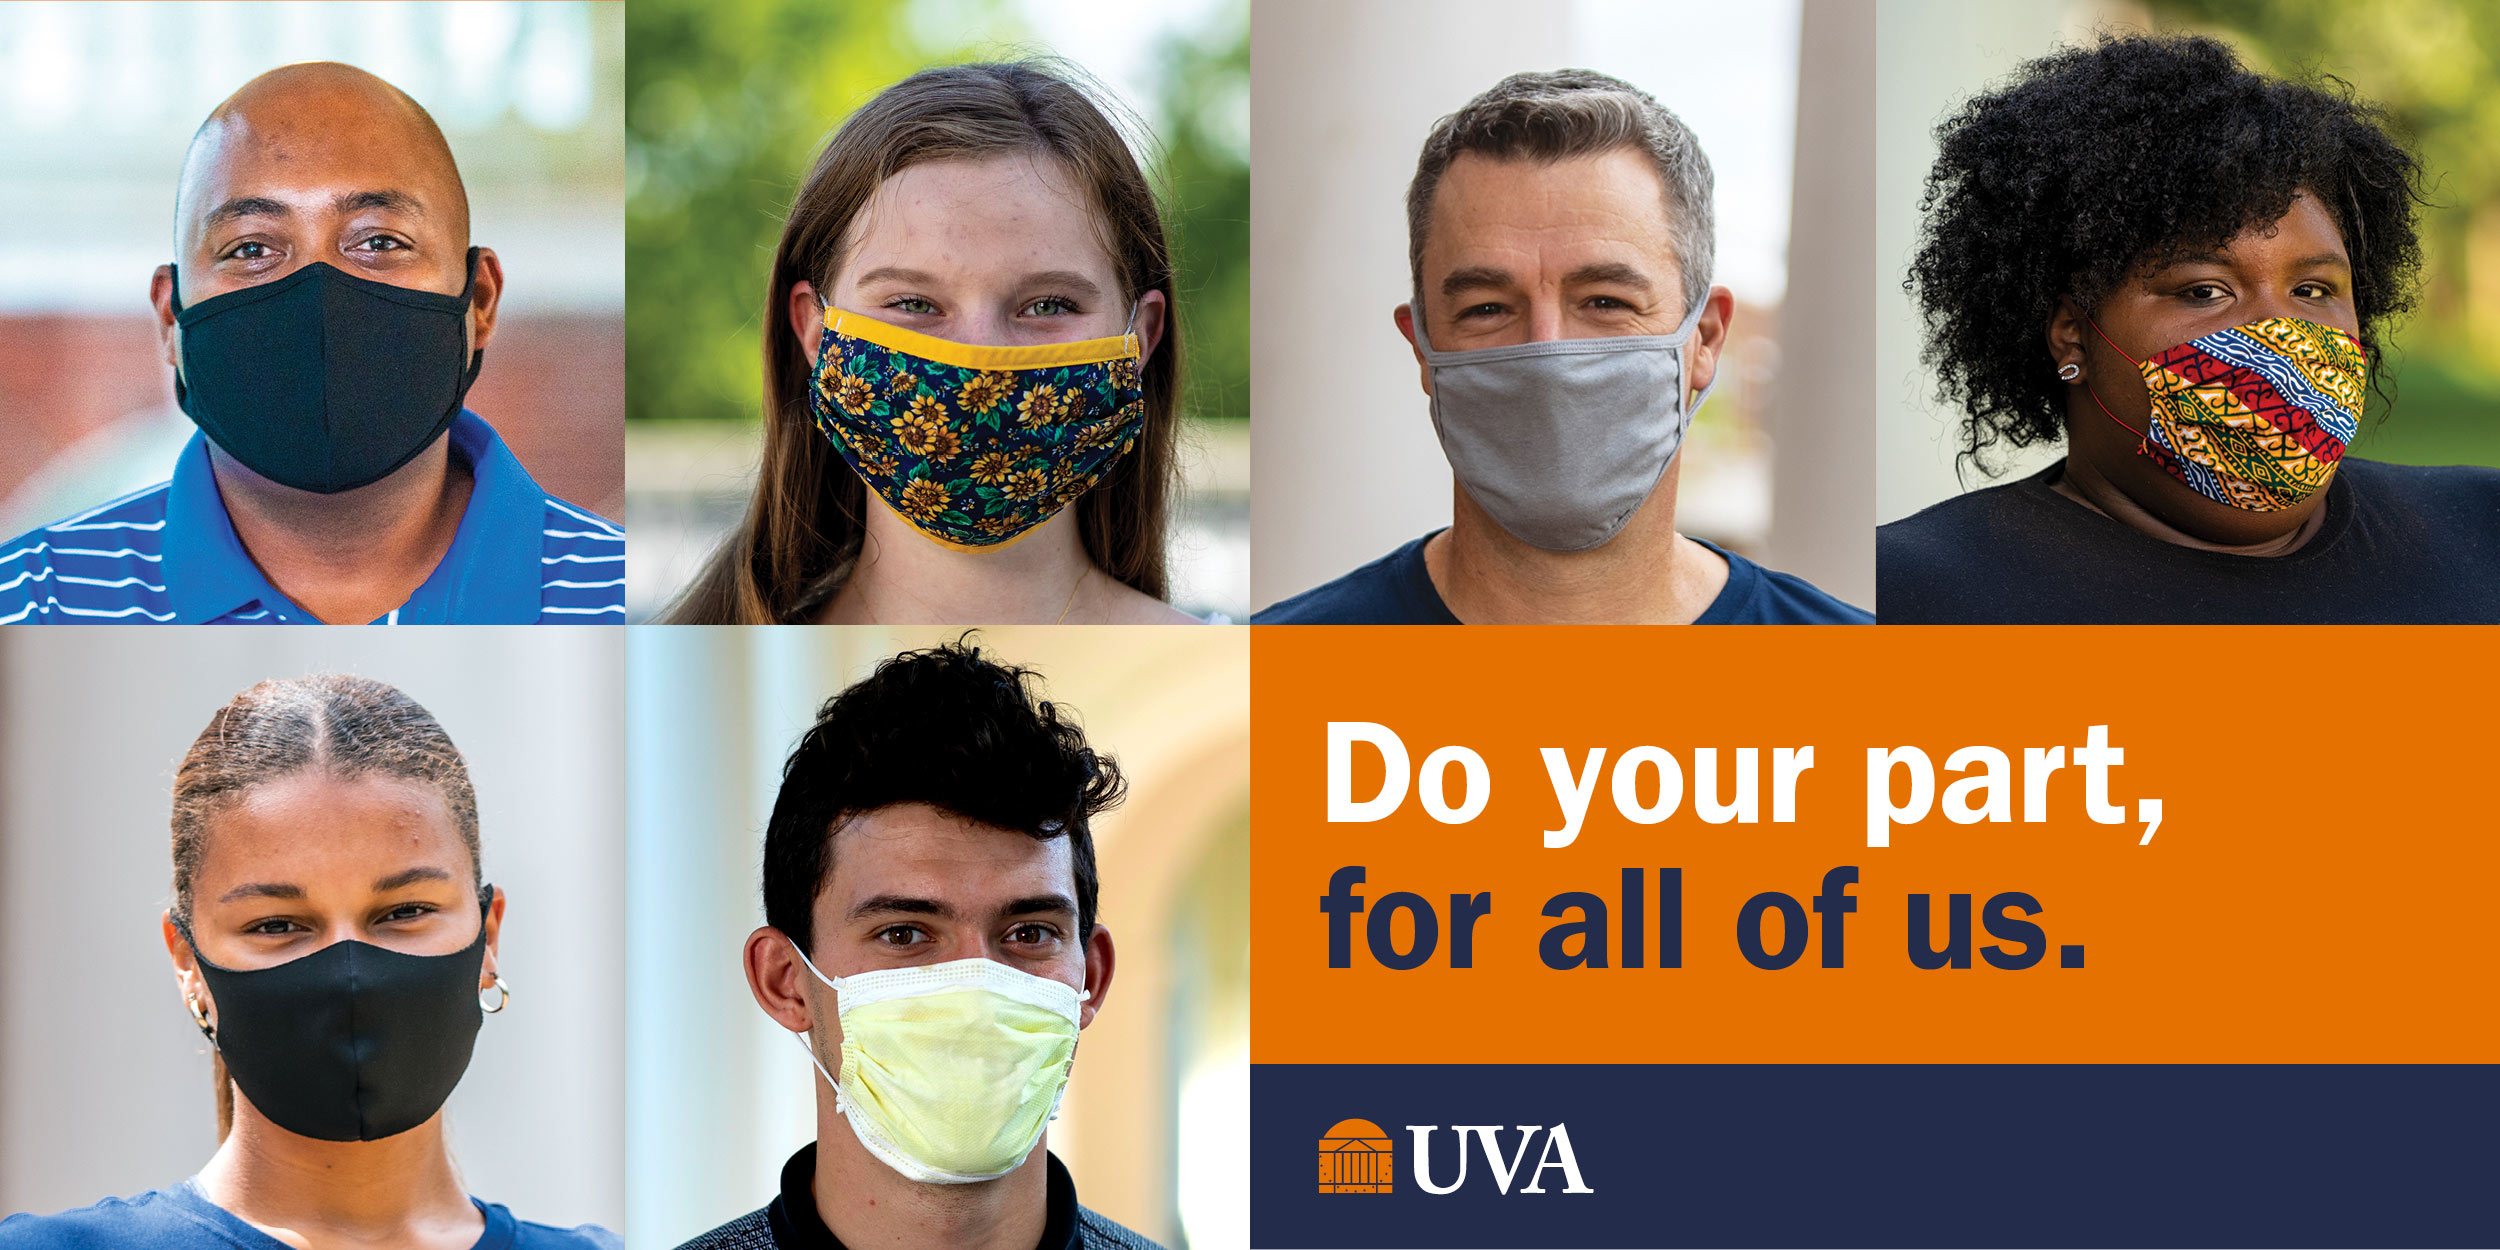 Do your part, for all of us. UVA.